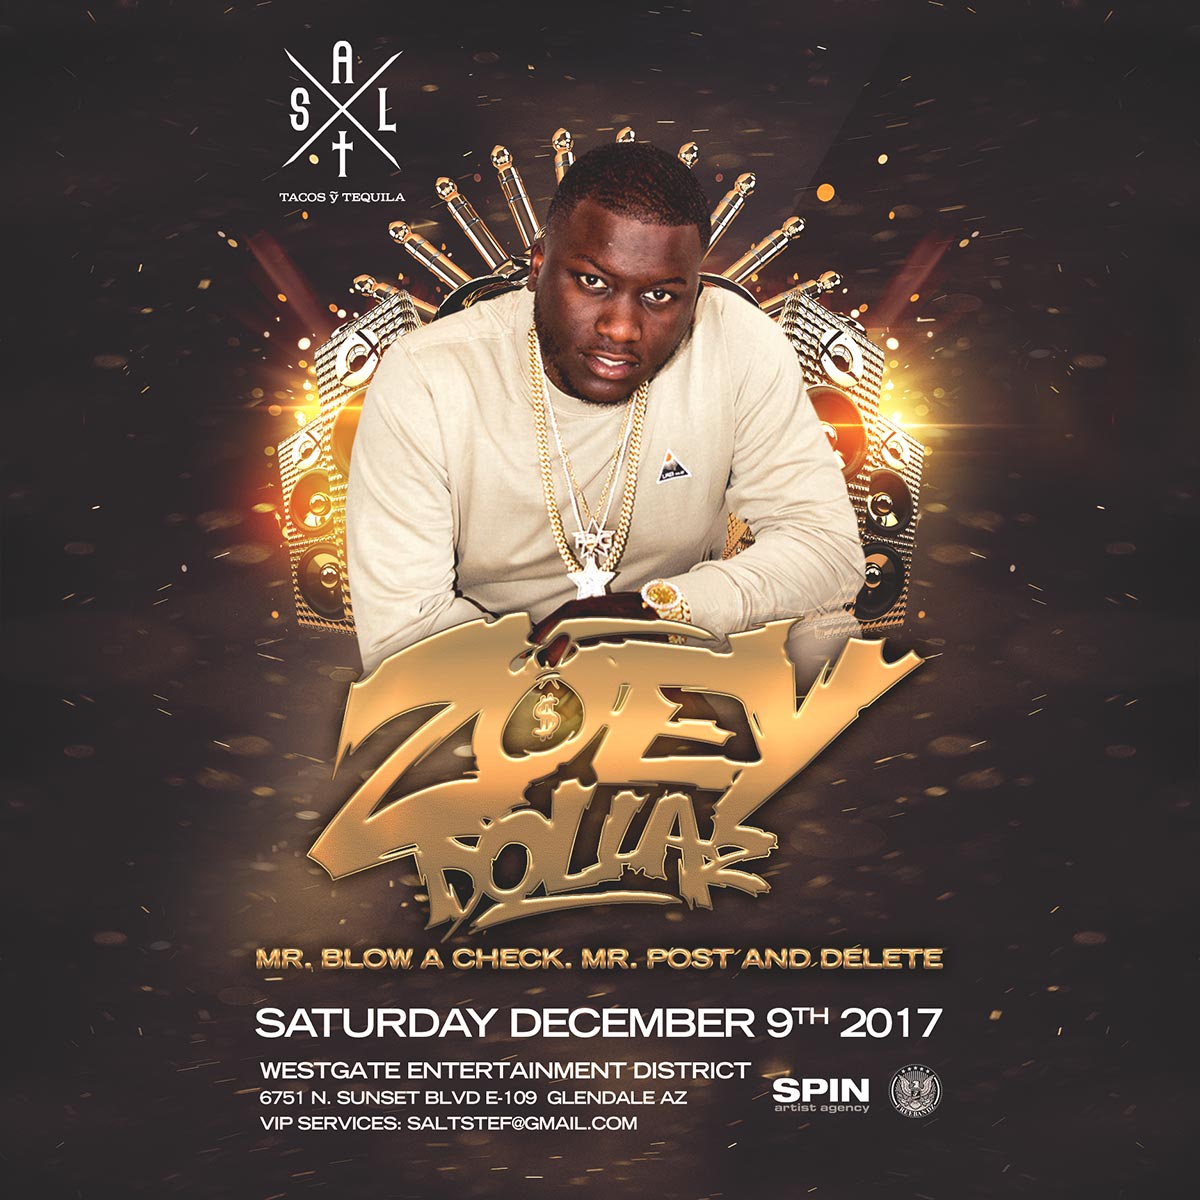 Flyer for Zoey Dollaz